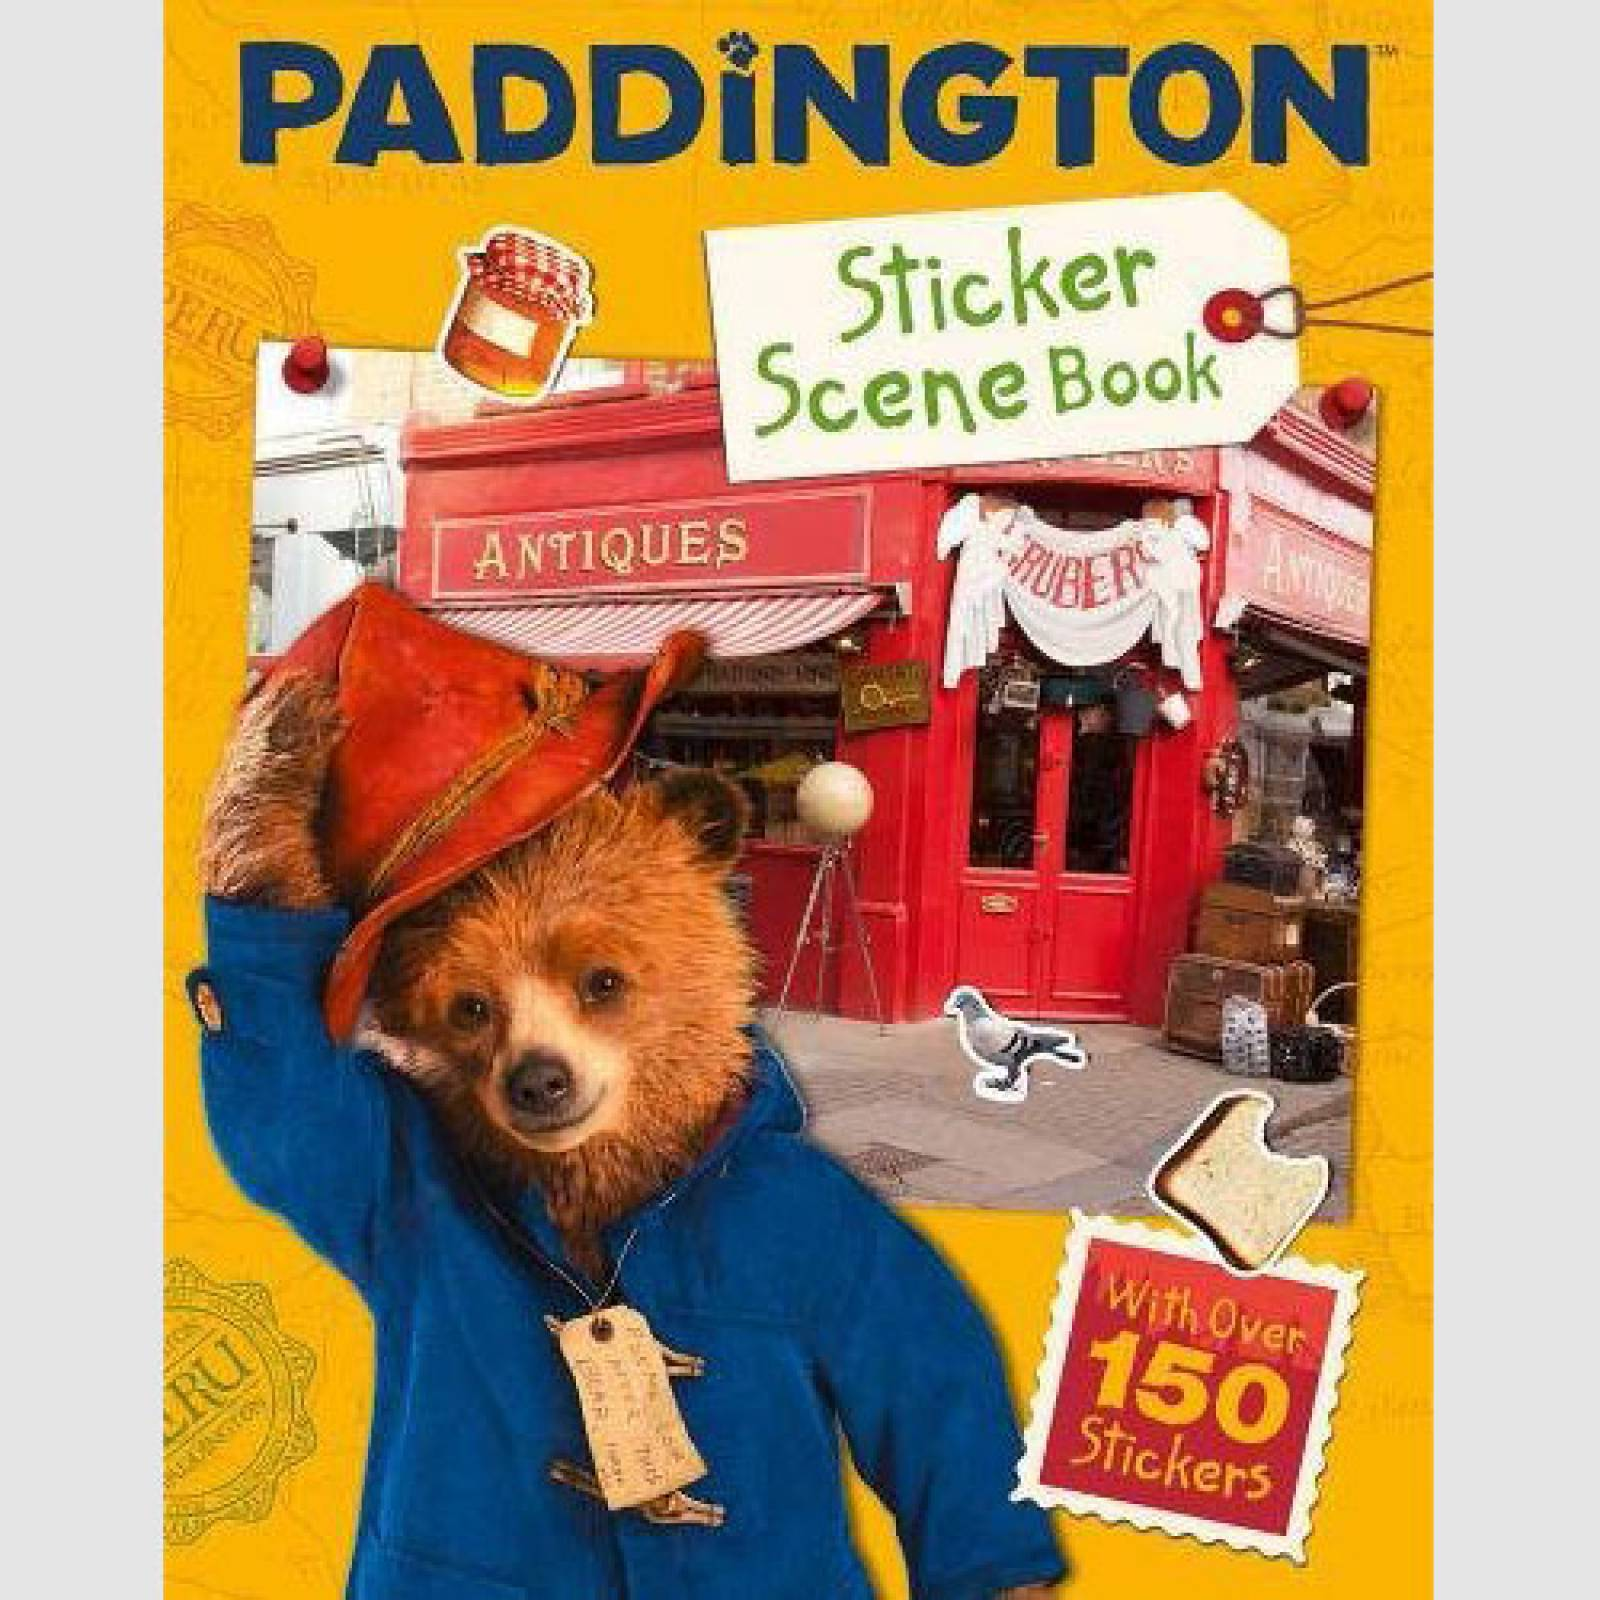 Paddington Sticker Scene Book